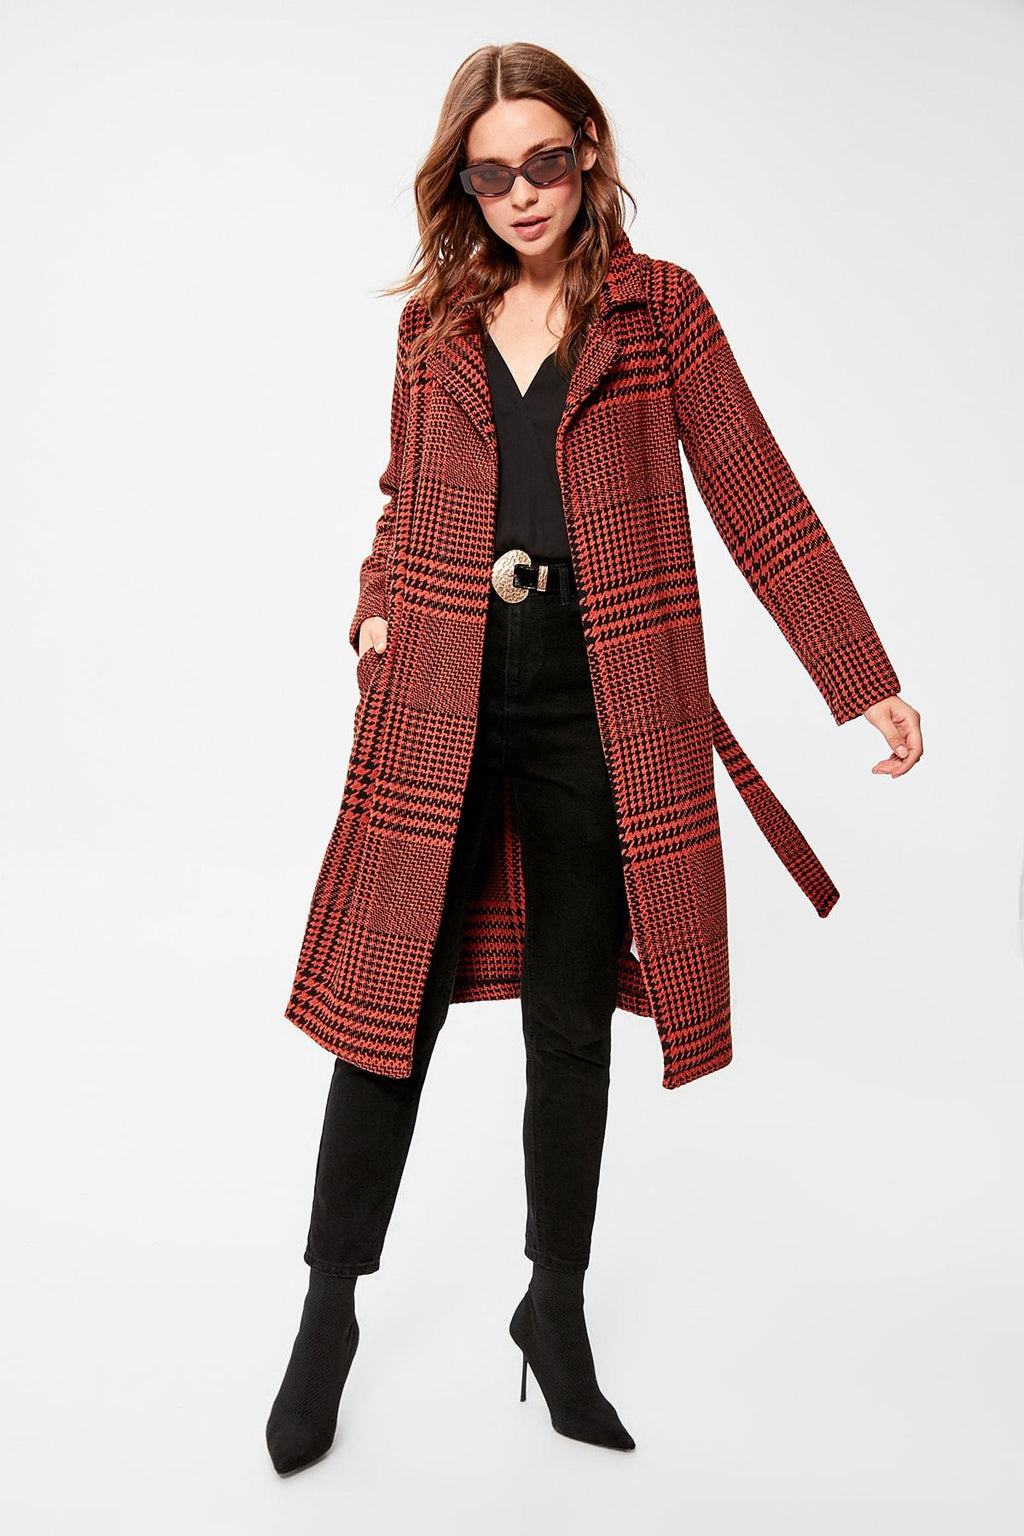 Cinnamon Arched Pattern Stamp Coat